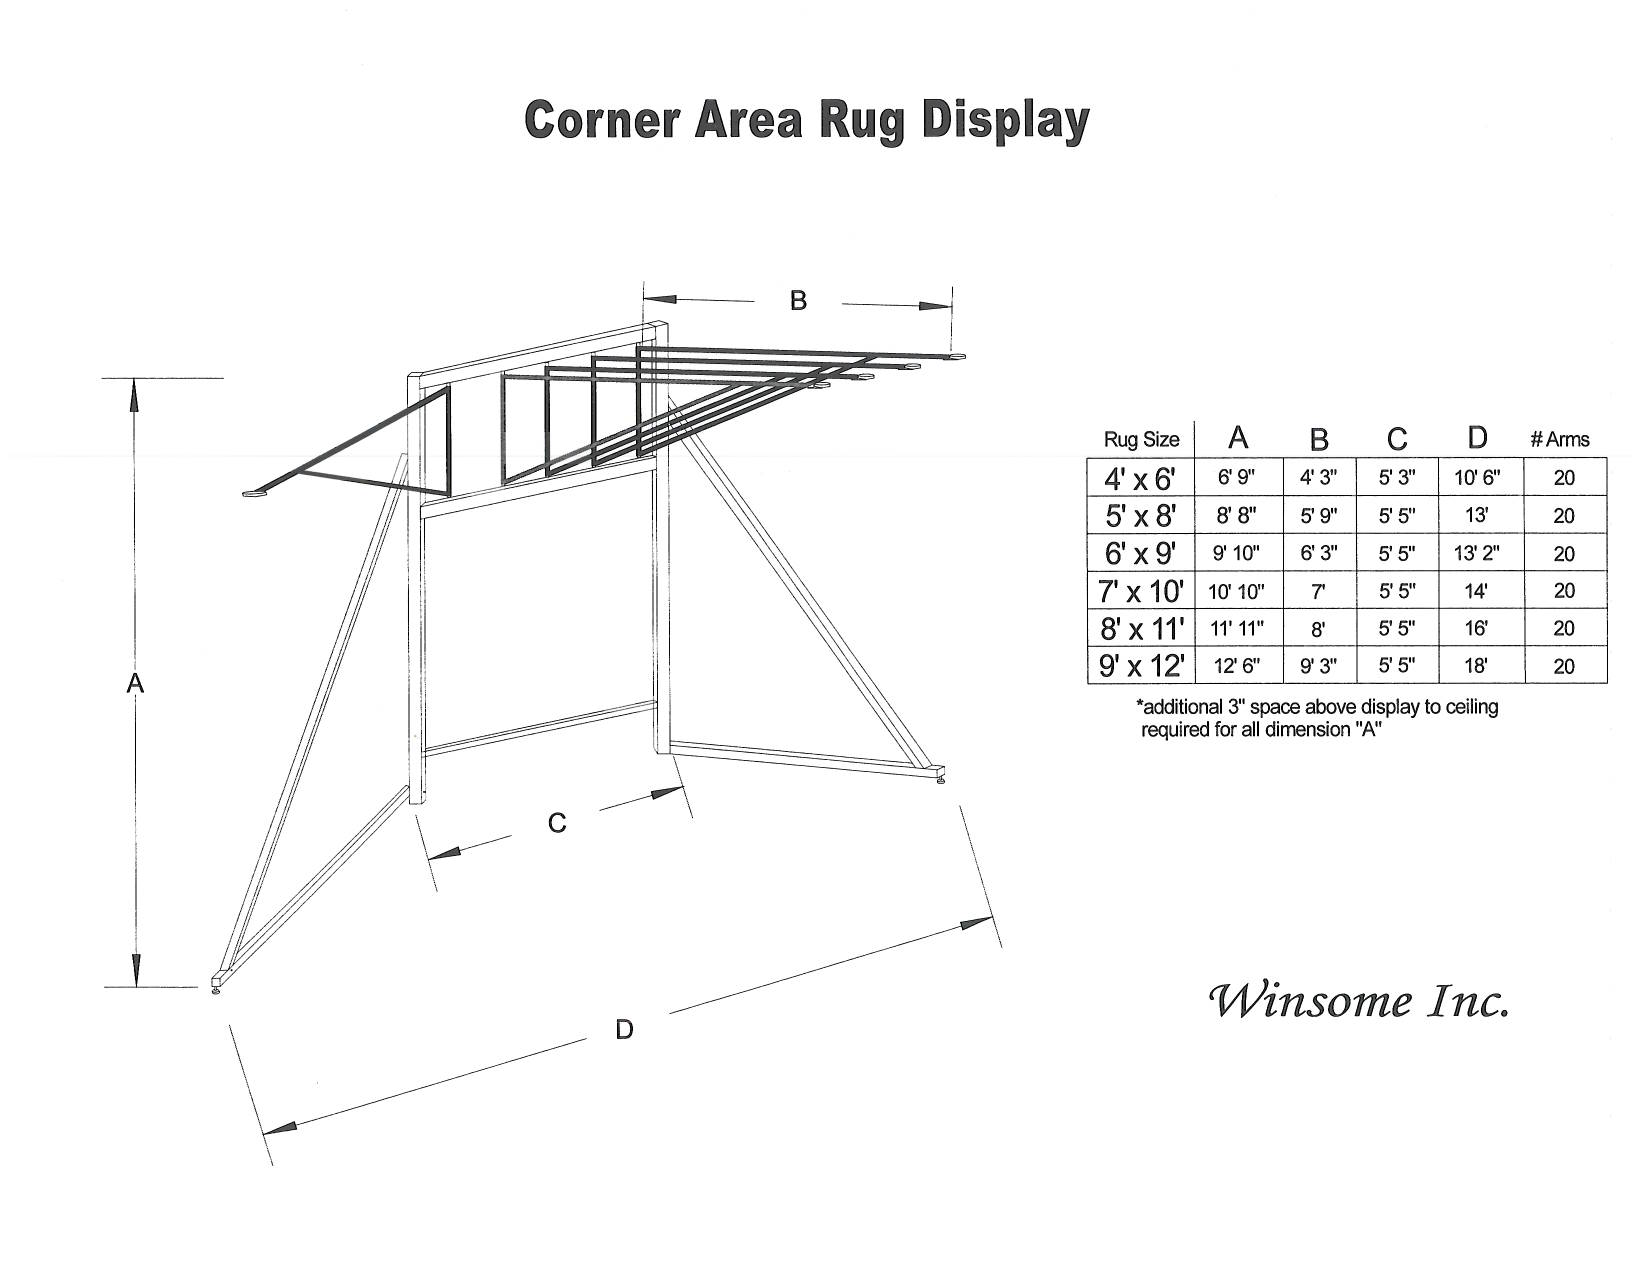 Traditional Rug Display. Ideal For Showroom Corners. Displays One Size Of  Rug.